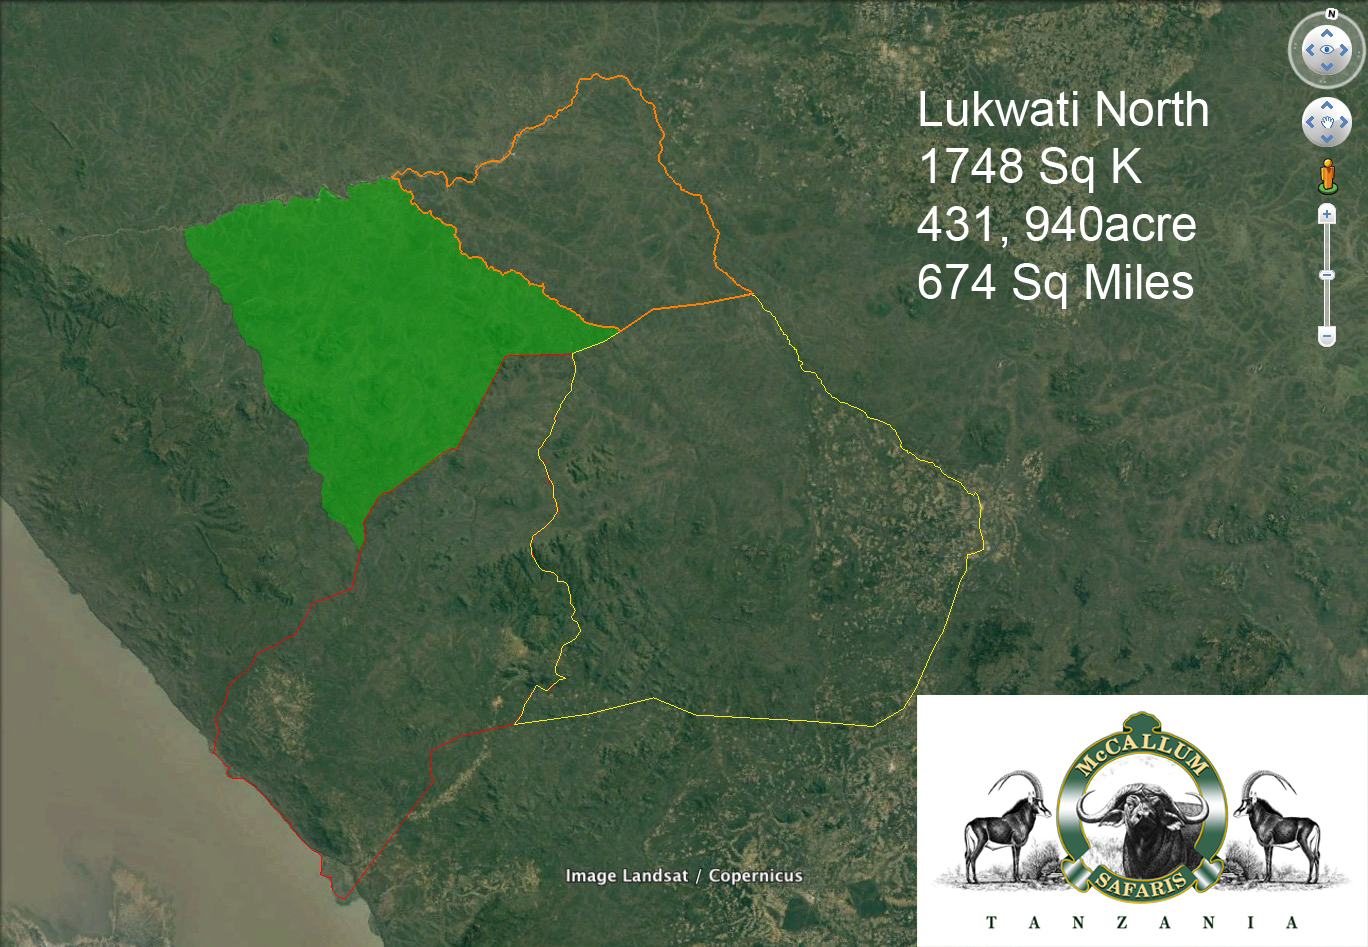 Lukwati North